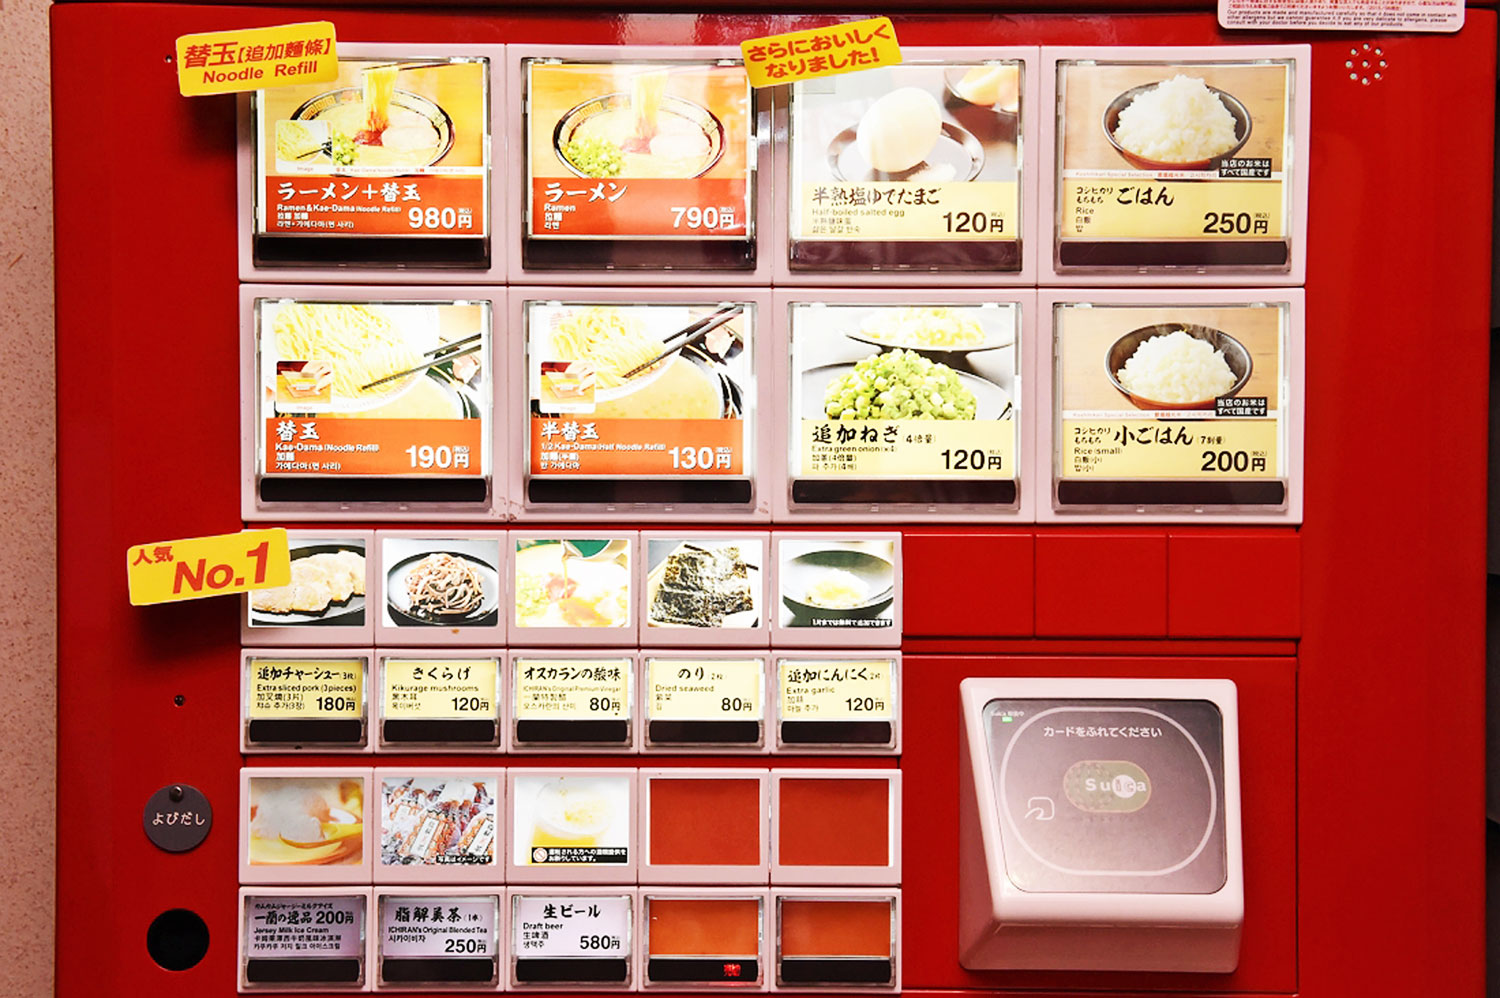 Ichiran Ramen: A Dining Experience without any Human Interaction - Ordering Food from a vending machine